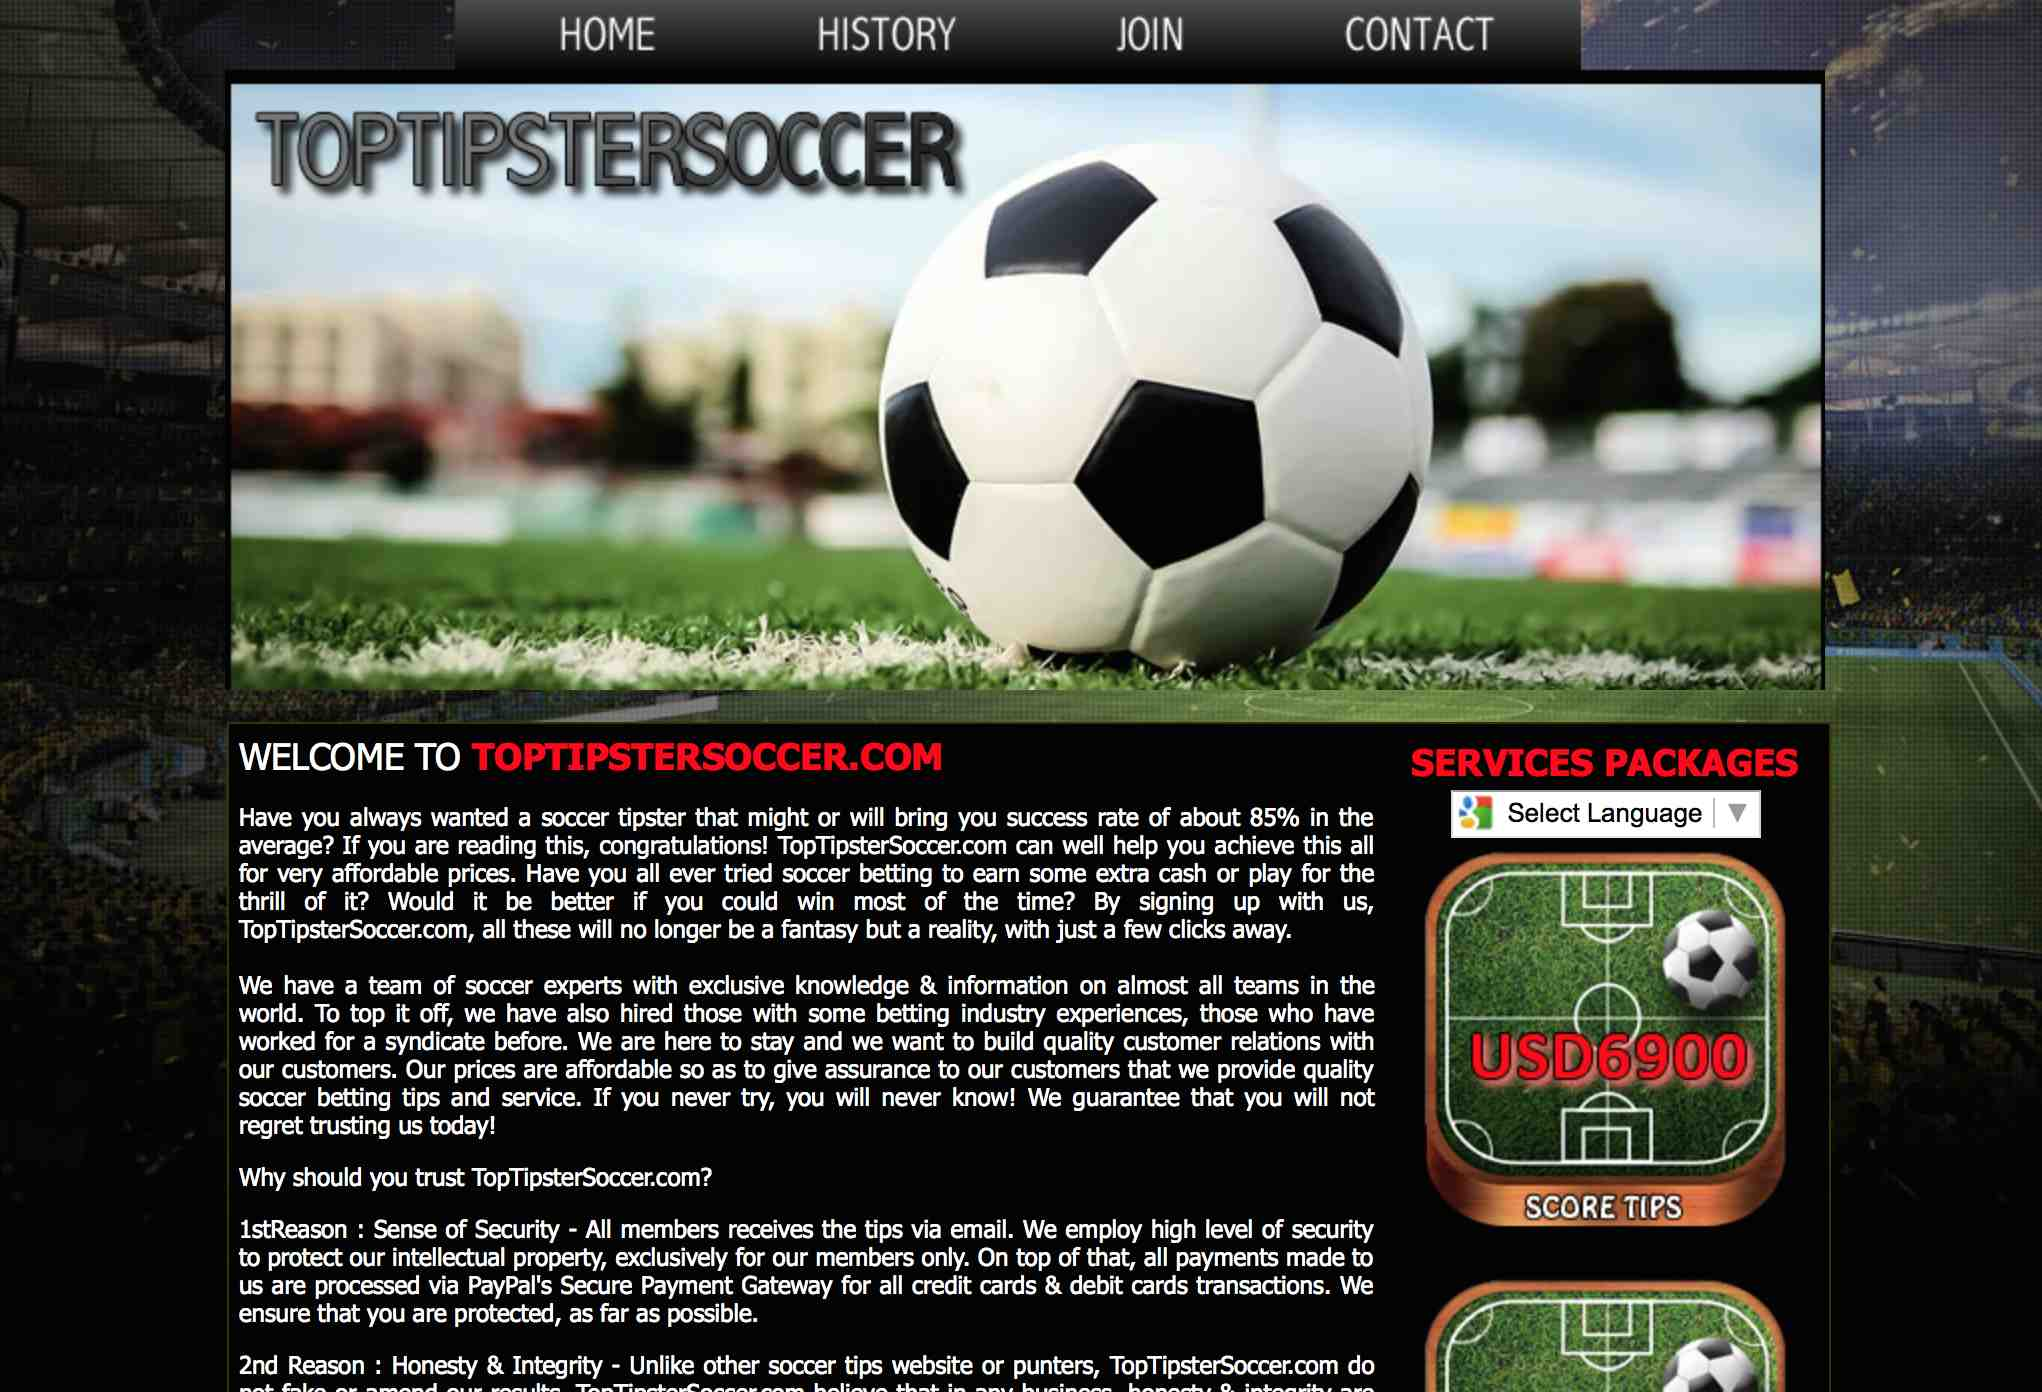 Top tipster soccer